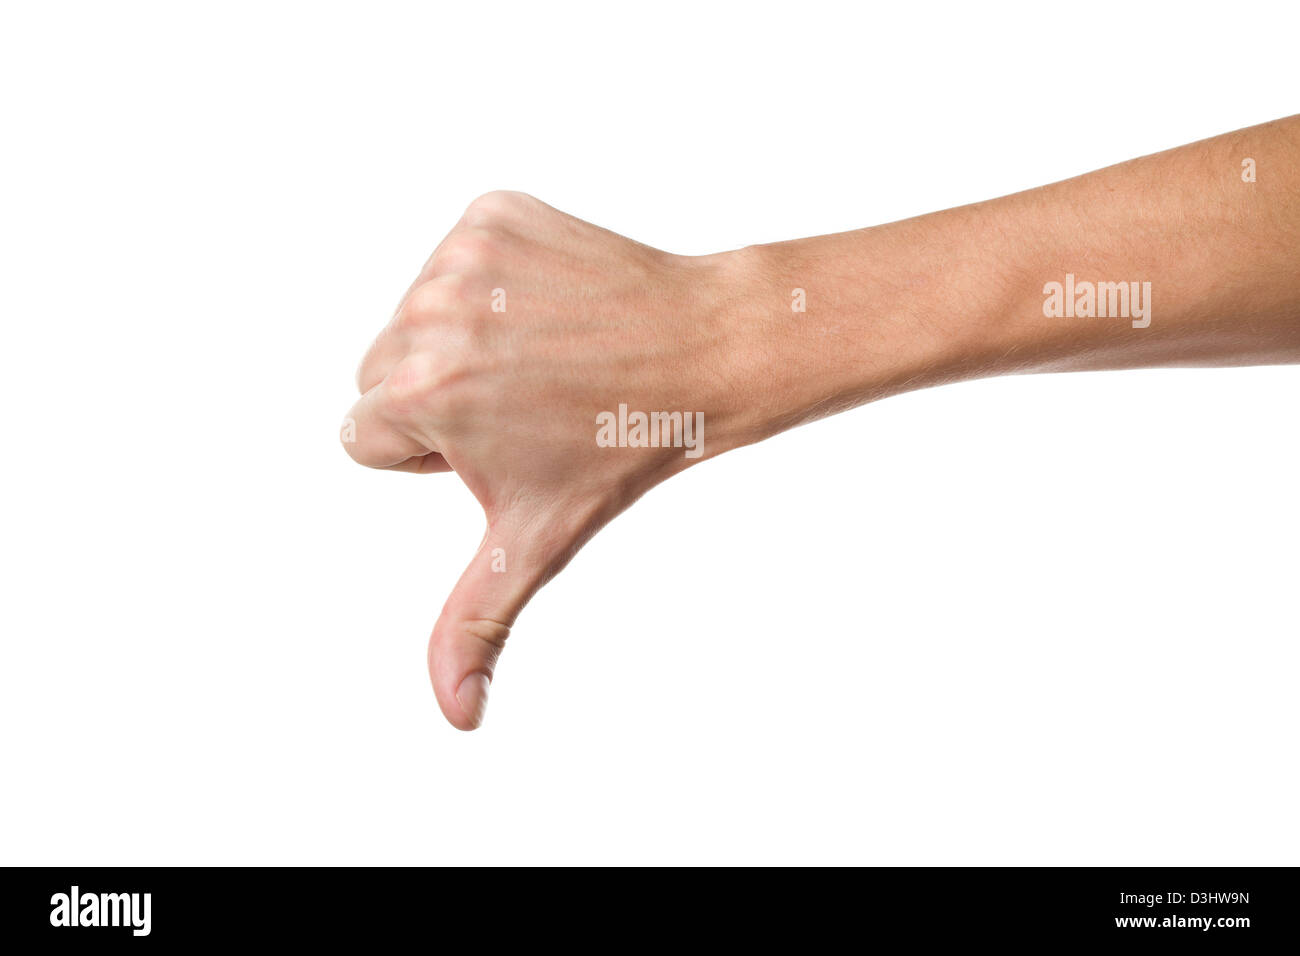 Disapproval - thumbs down hand sign - Stock Image